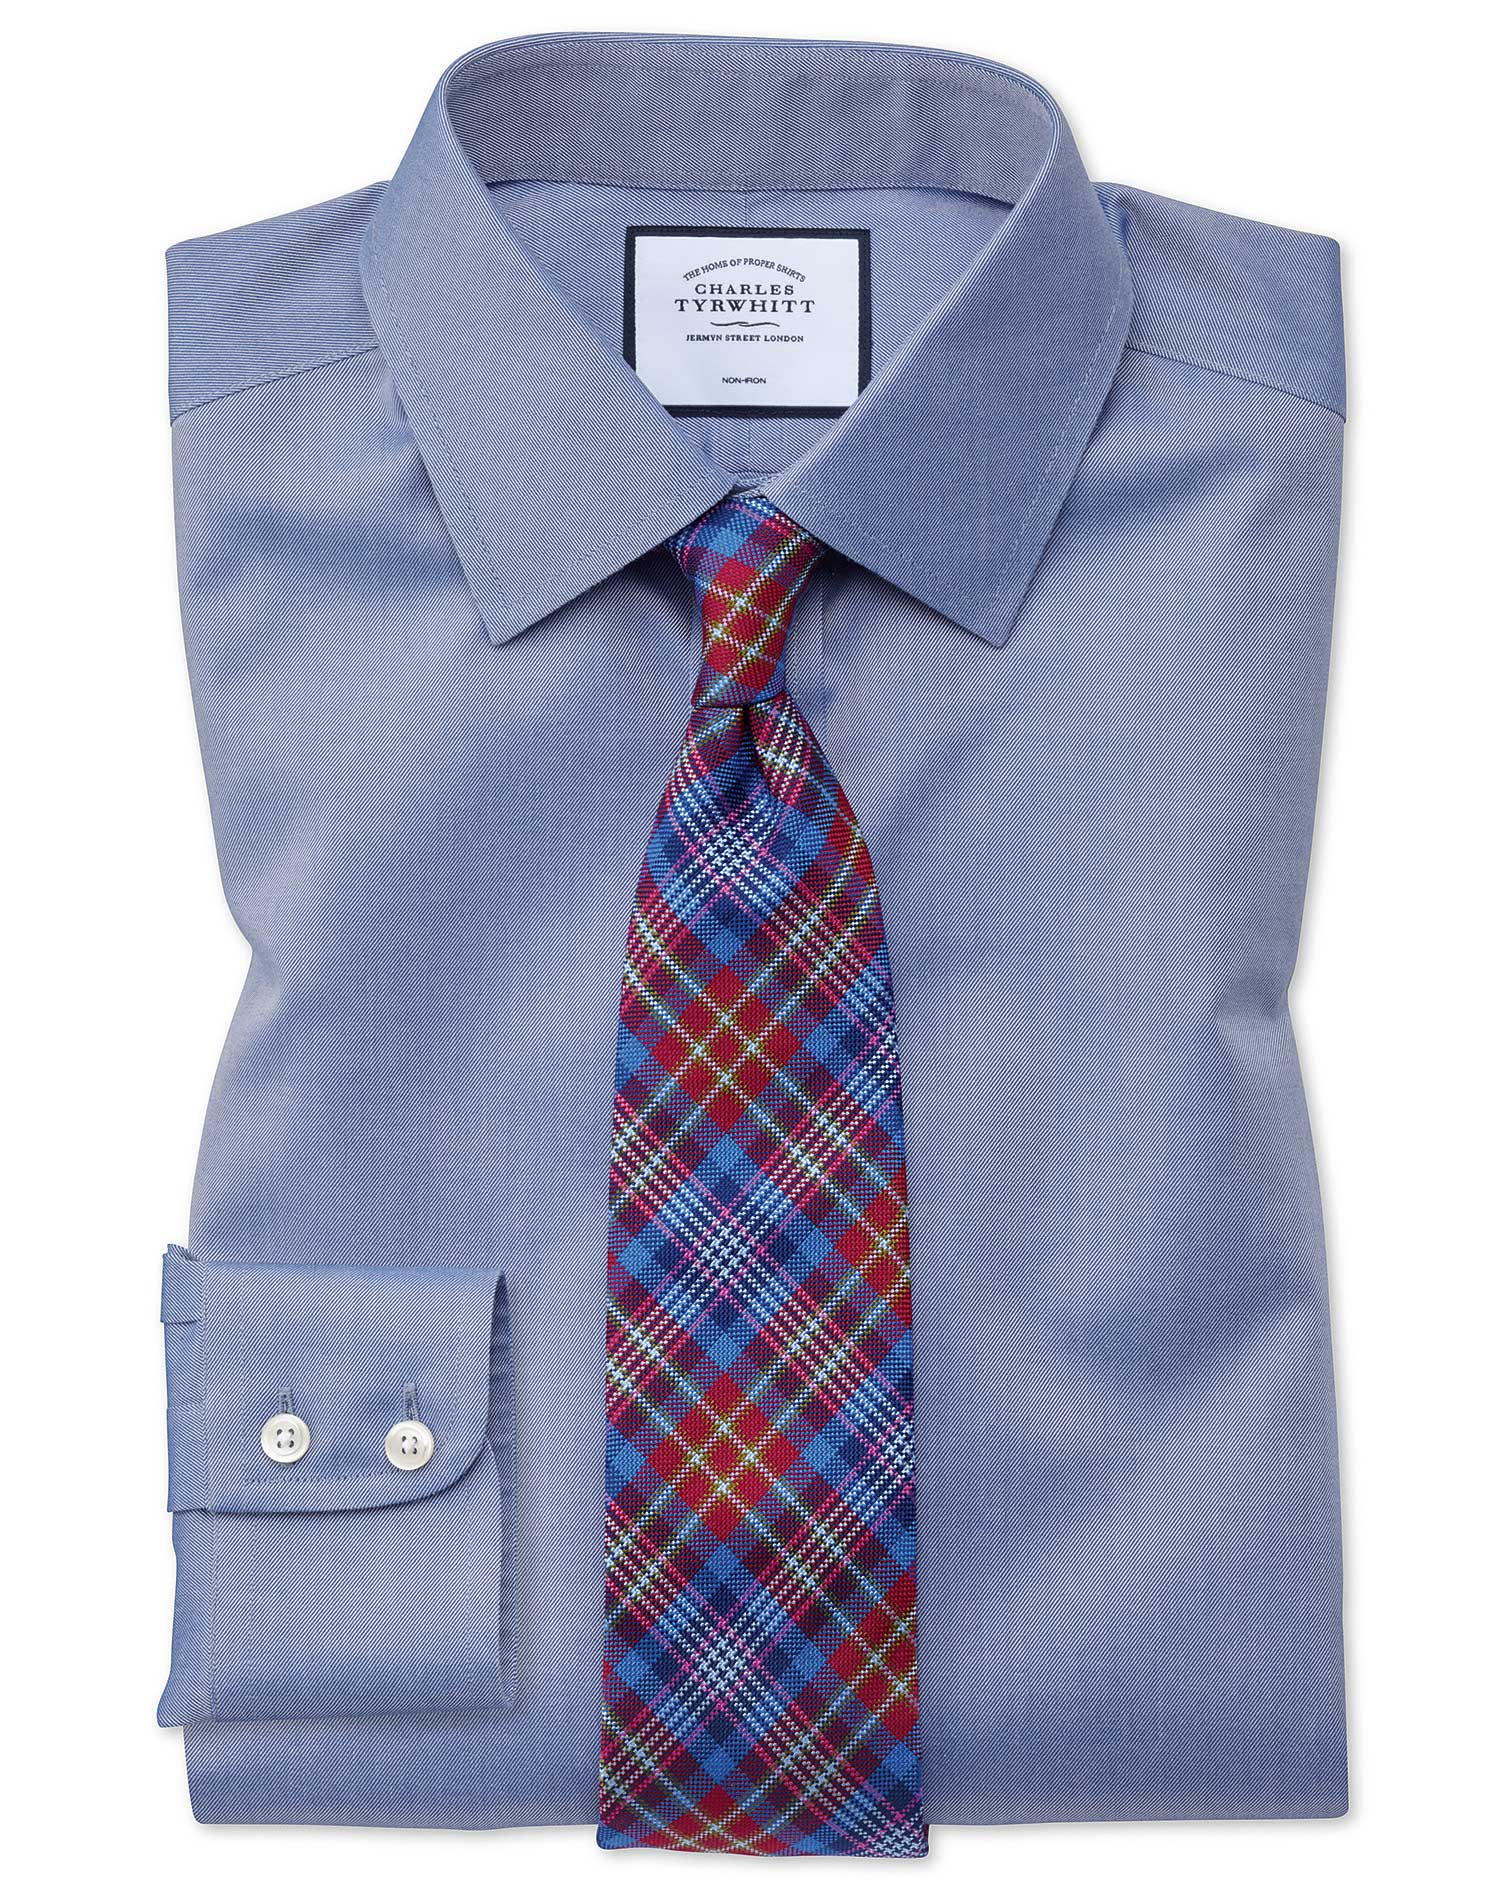 Slim Fit Mid-Blue Non-Iron Twill Cotton Formal Shirt Single Cuff Size 14.5/33 by Charles Tyrwhitt